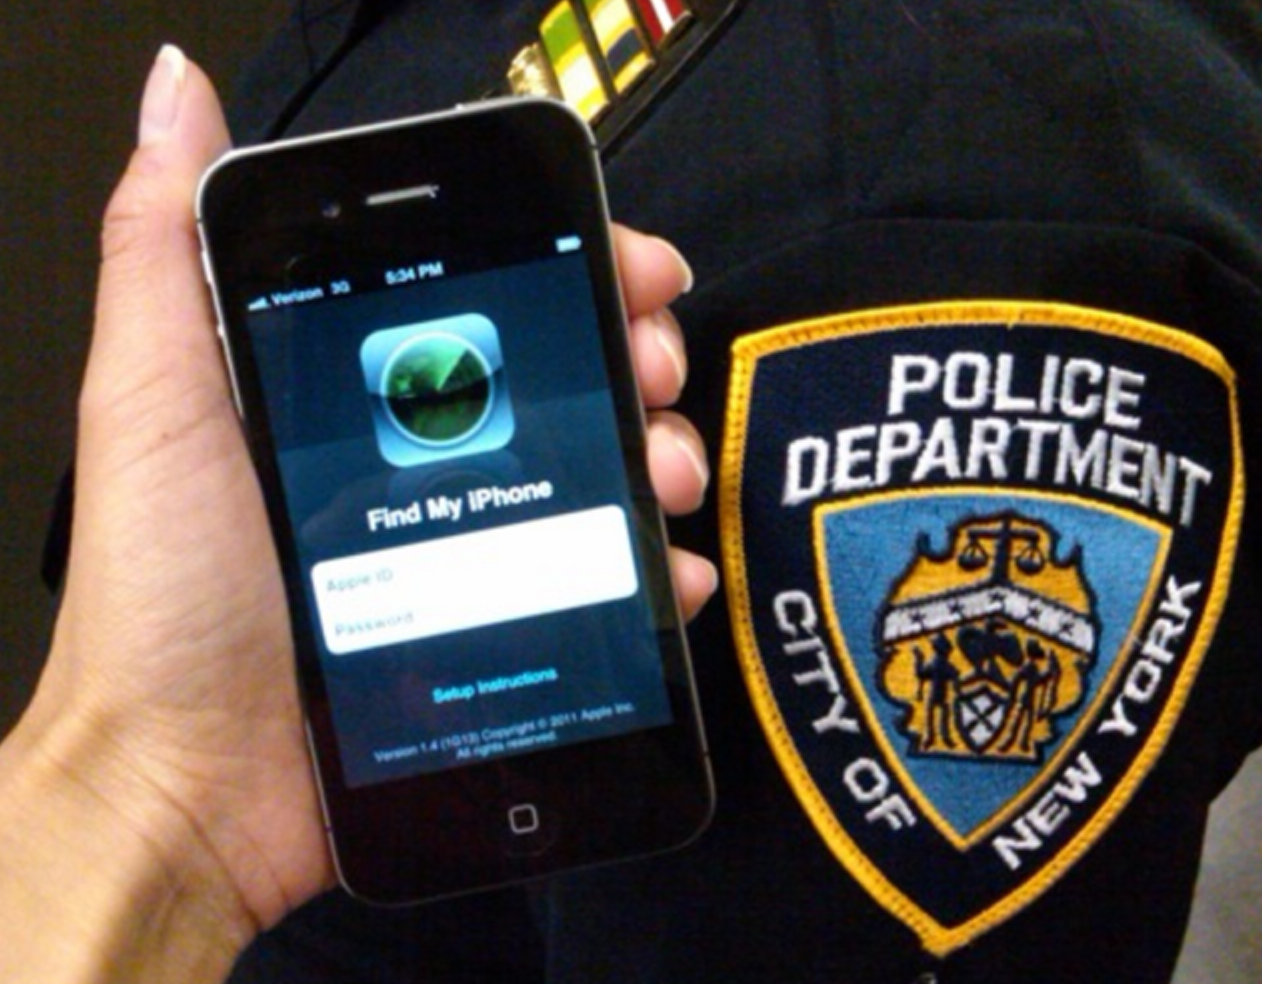 NYPD-iPhone-01